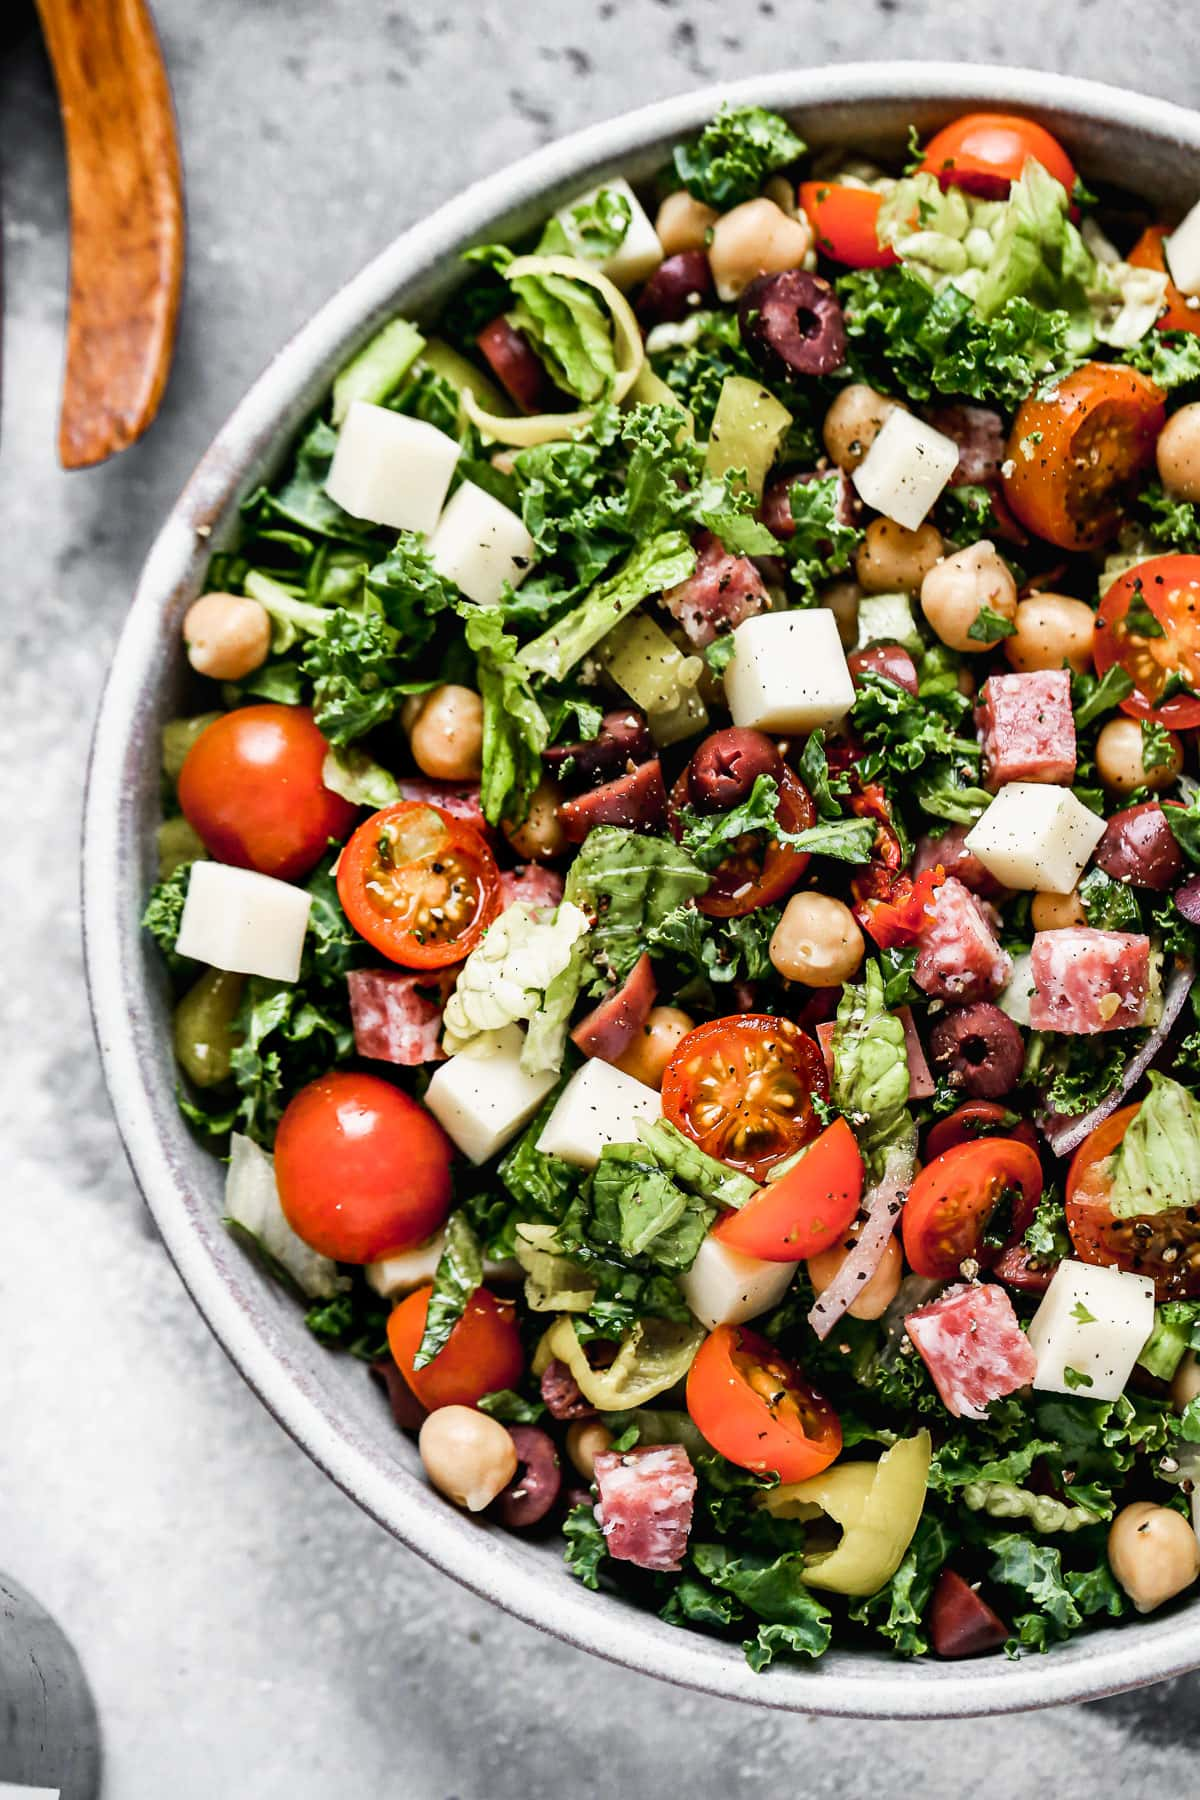 Italian chopped salad in a bowl with chickpeas